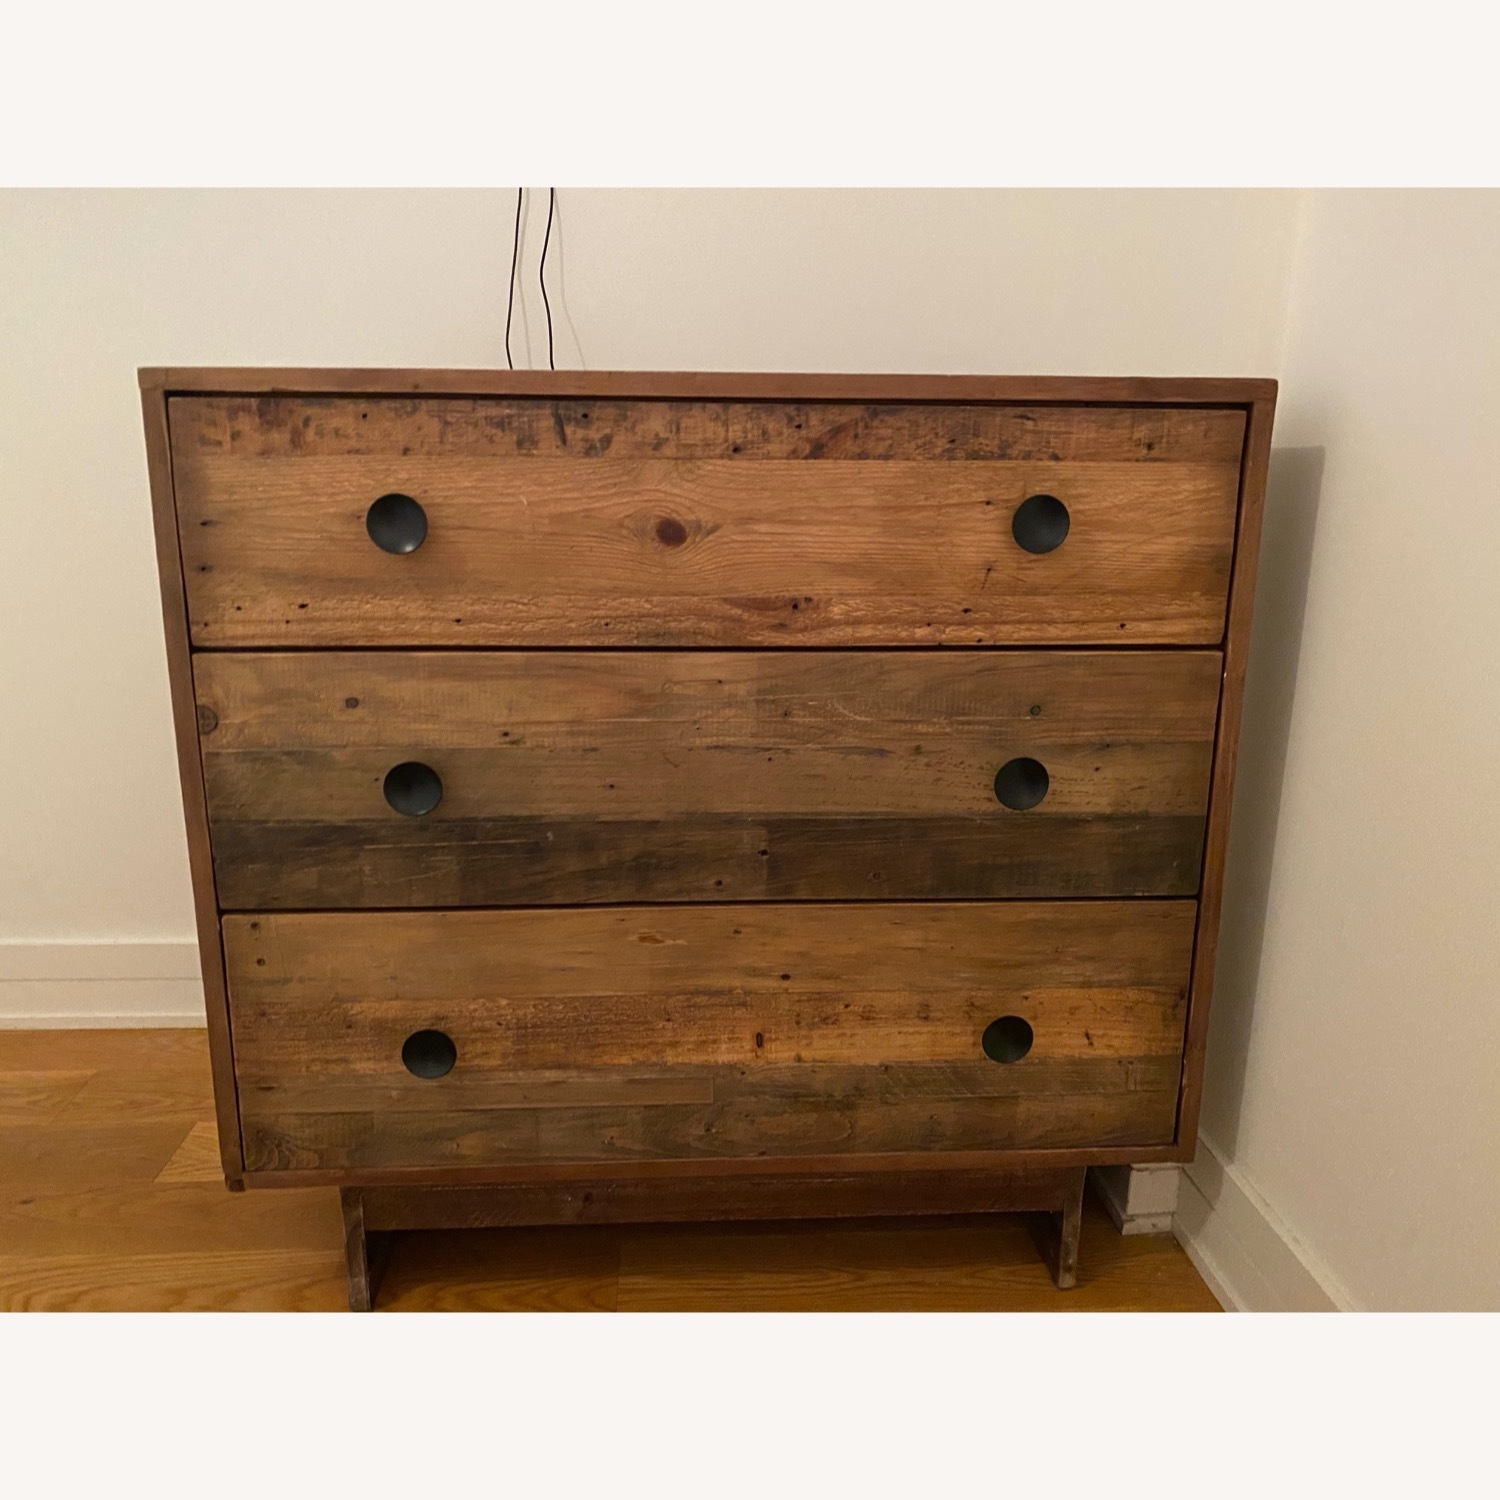 West Elm Reclaimed Wood 3-Drawer Dresser - image-1